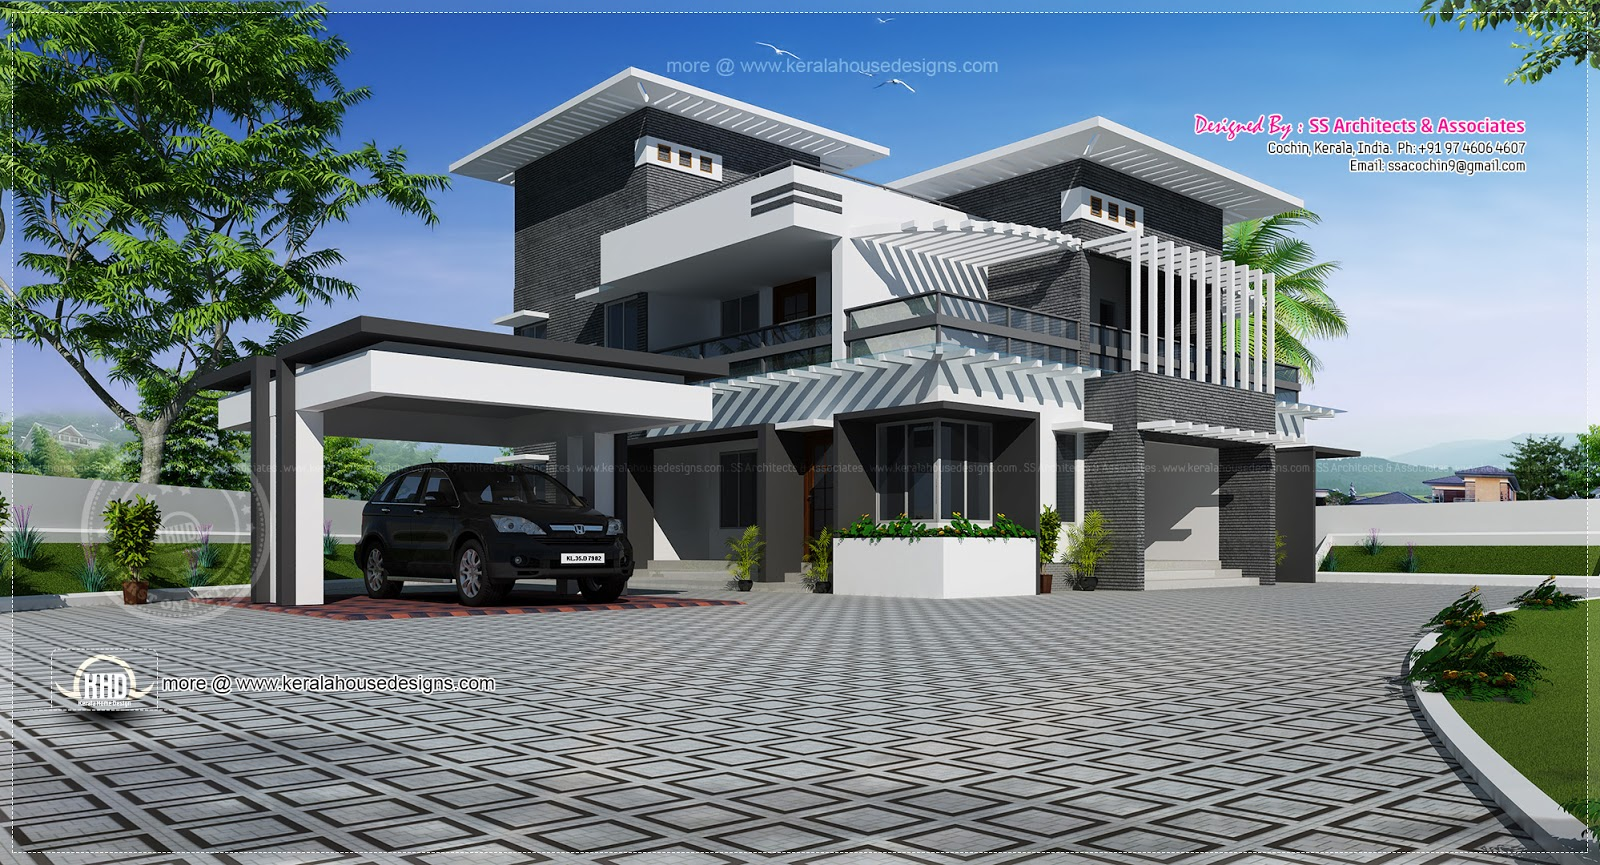 Contemporary home design in 2491 kerala home design and floor plans - Contemporary house designs ...